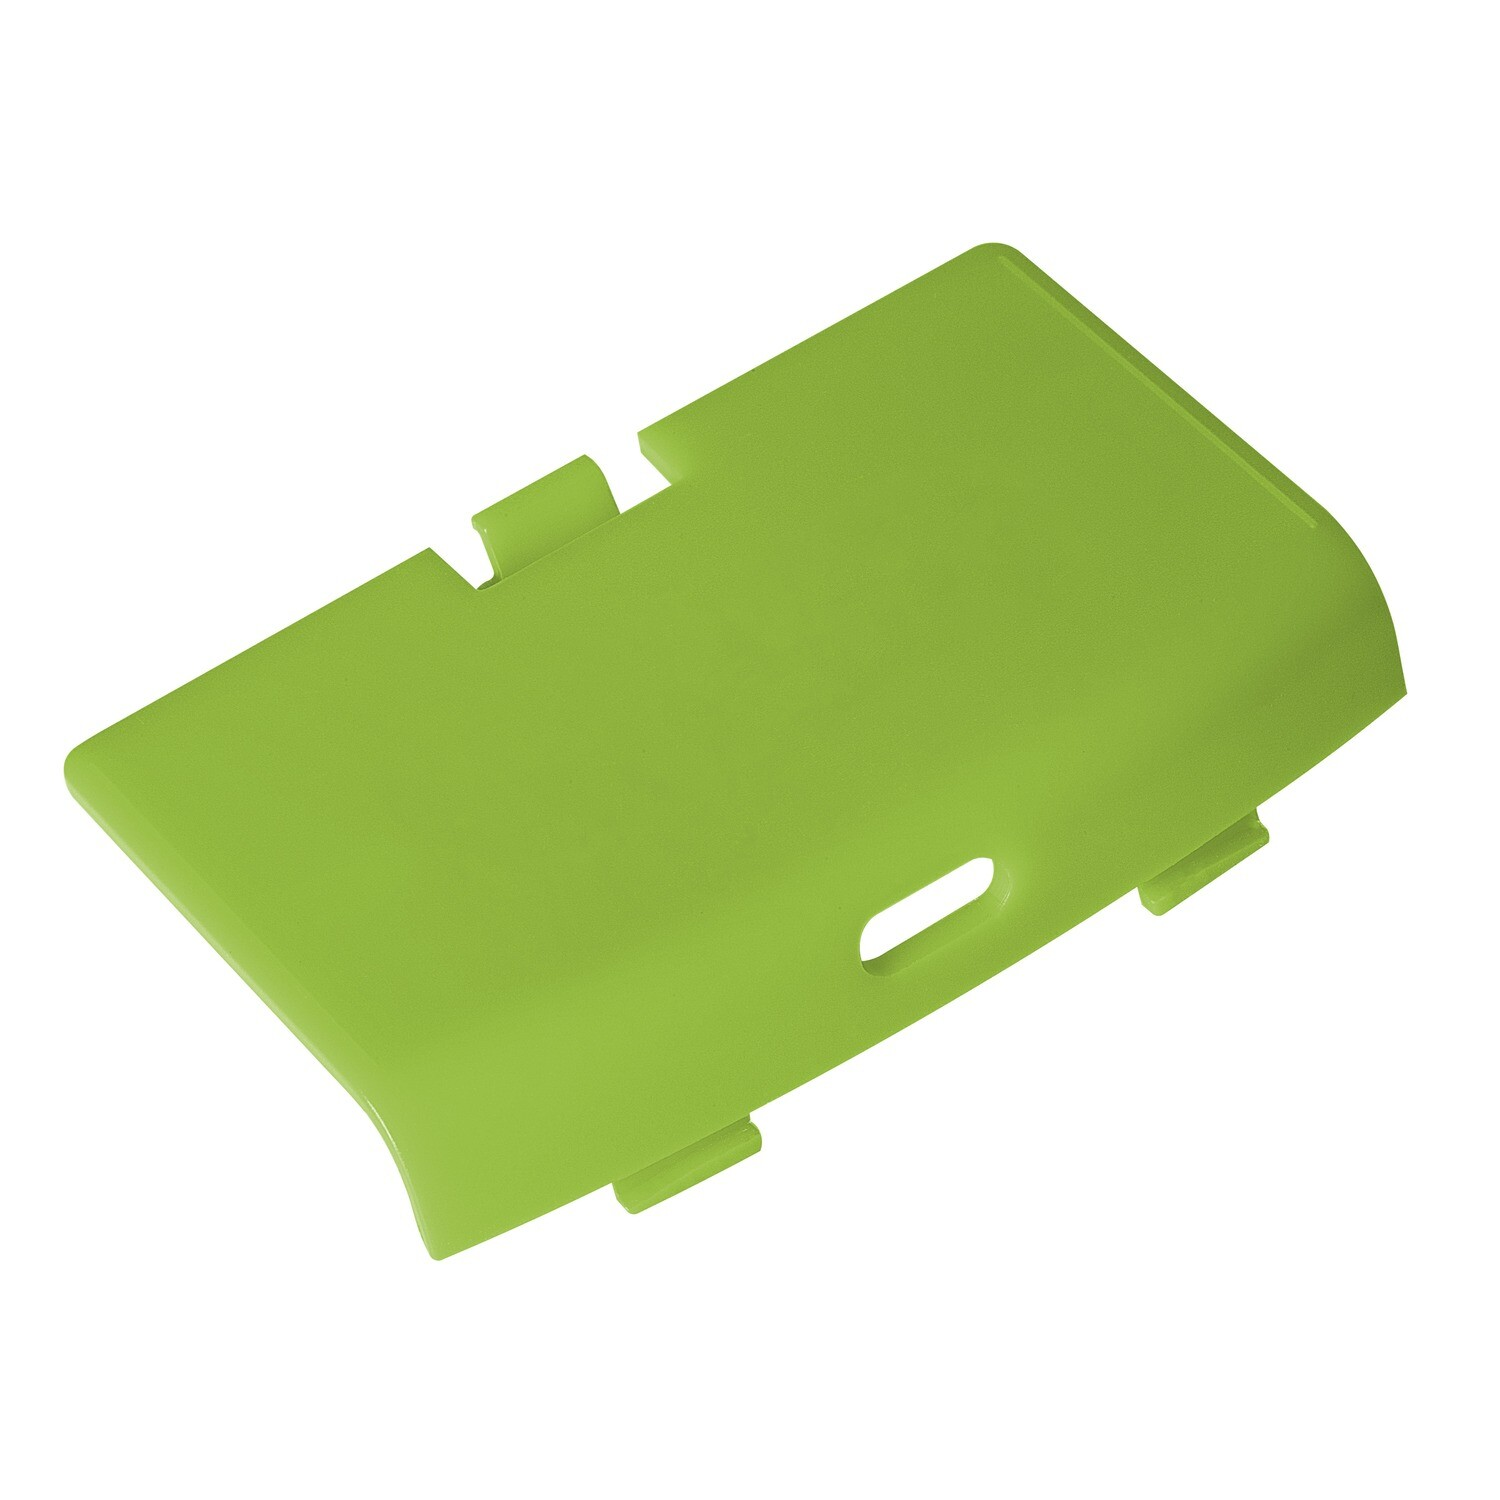 Game Boy Advance USB-C Battery Cover (Green)